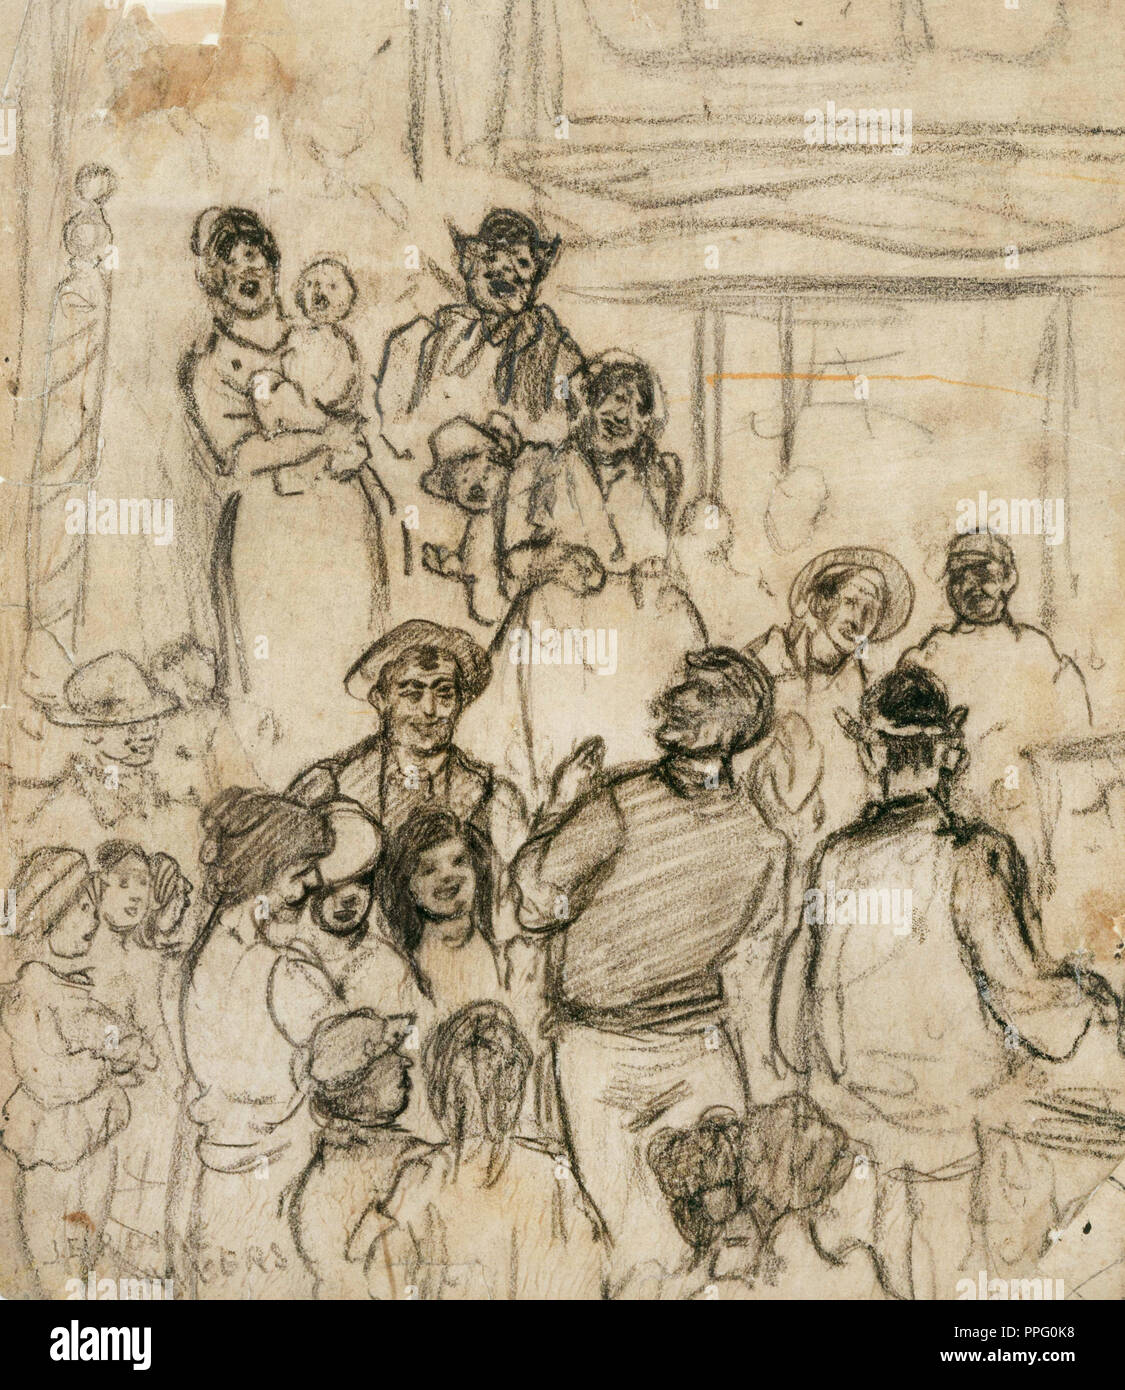 Jerome Myers, Street Singer. Charcoal on paper. Phillips Collection, Washington, D.C., USA. - Stock Image